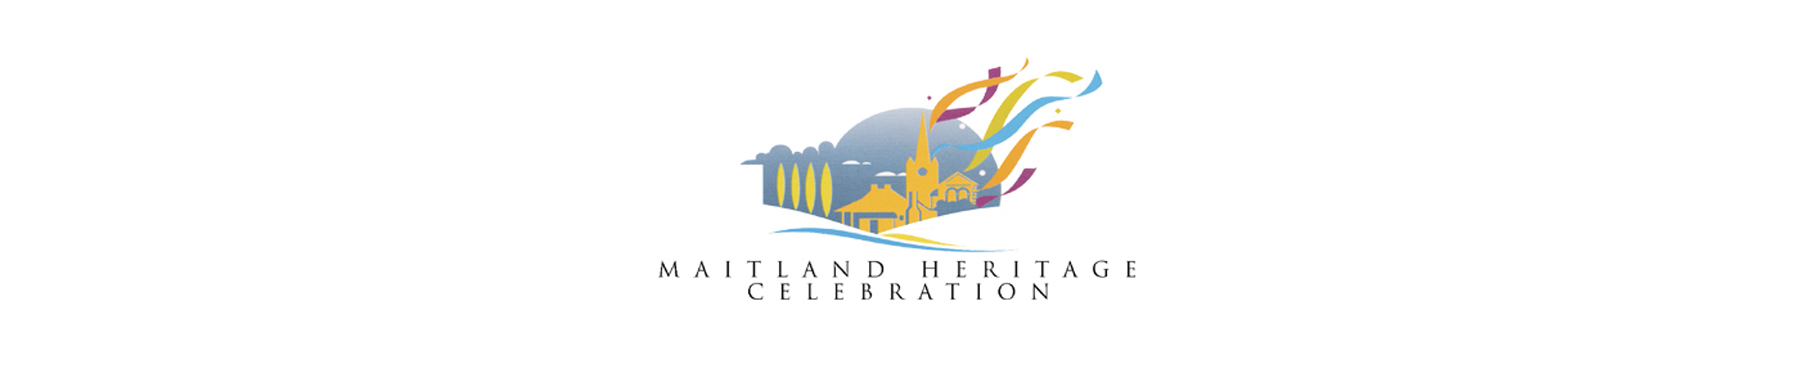 Maitland heritage celebration banner on white background